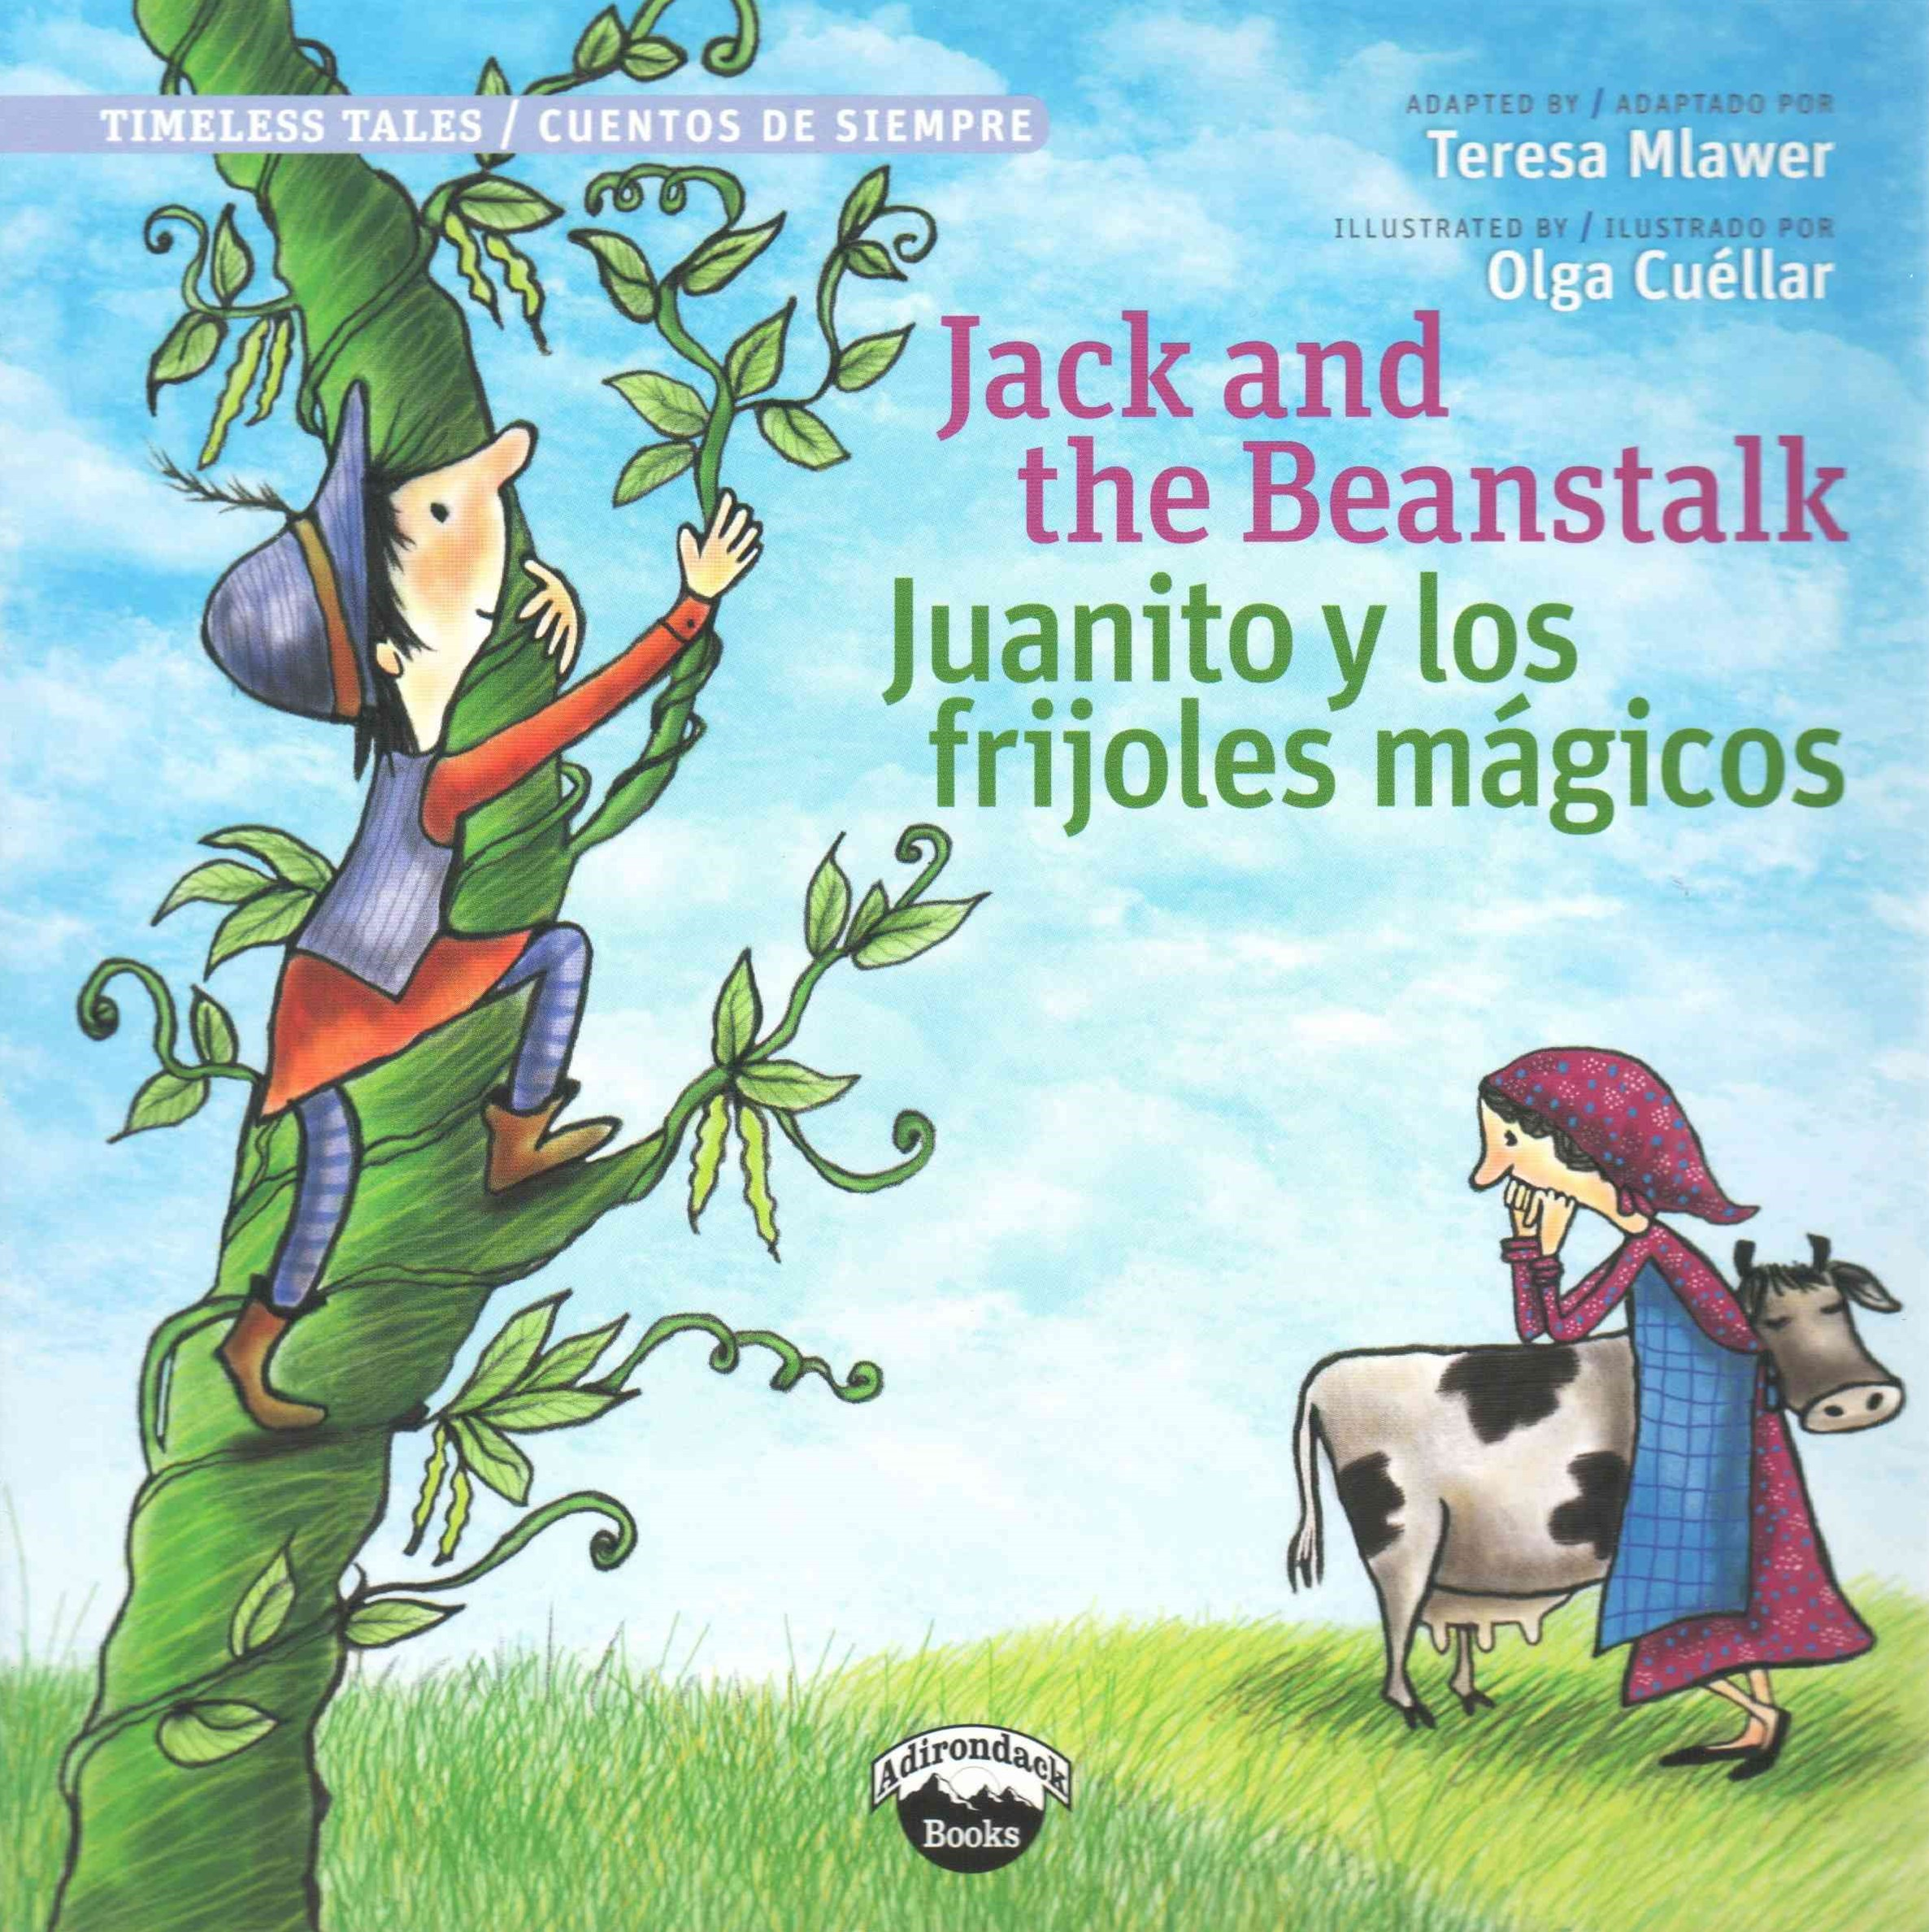 Jack and the Beanstalk/Juan y Los Frijoles M+ígicos